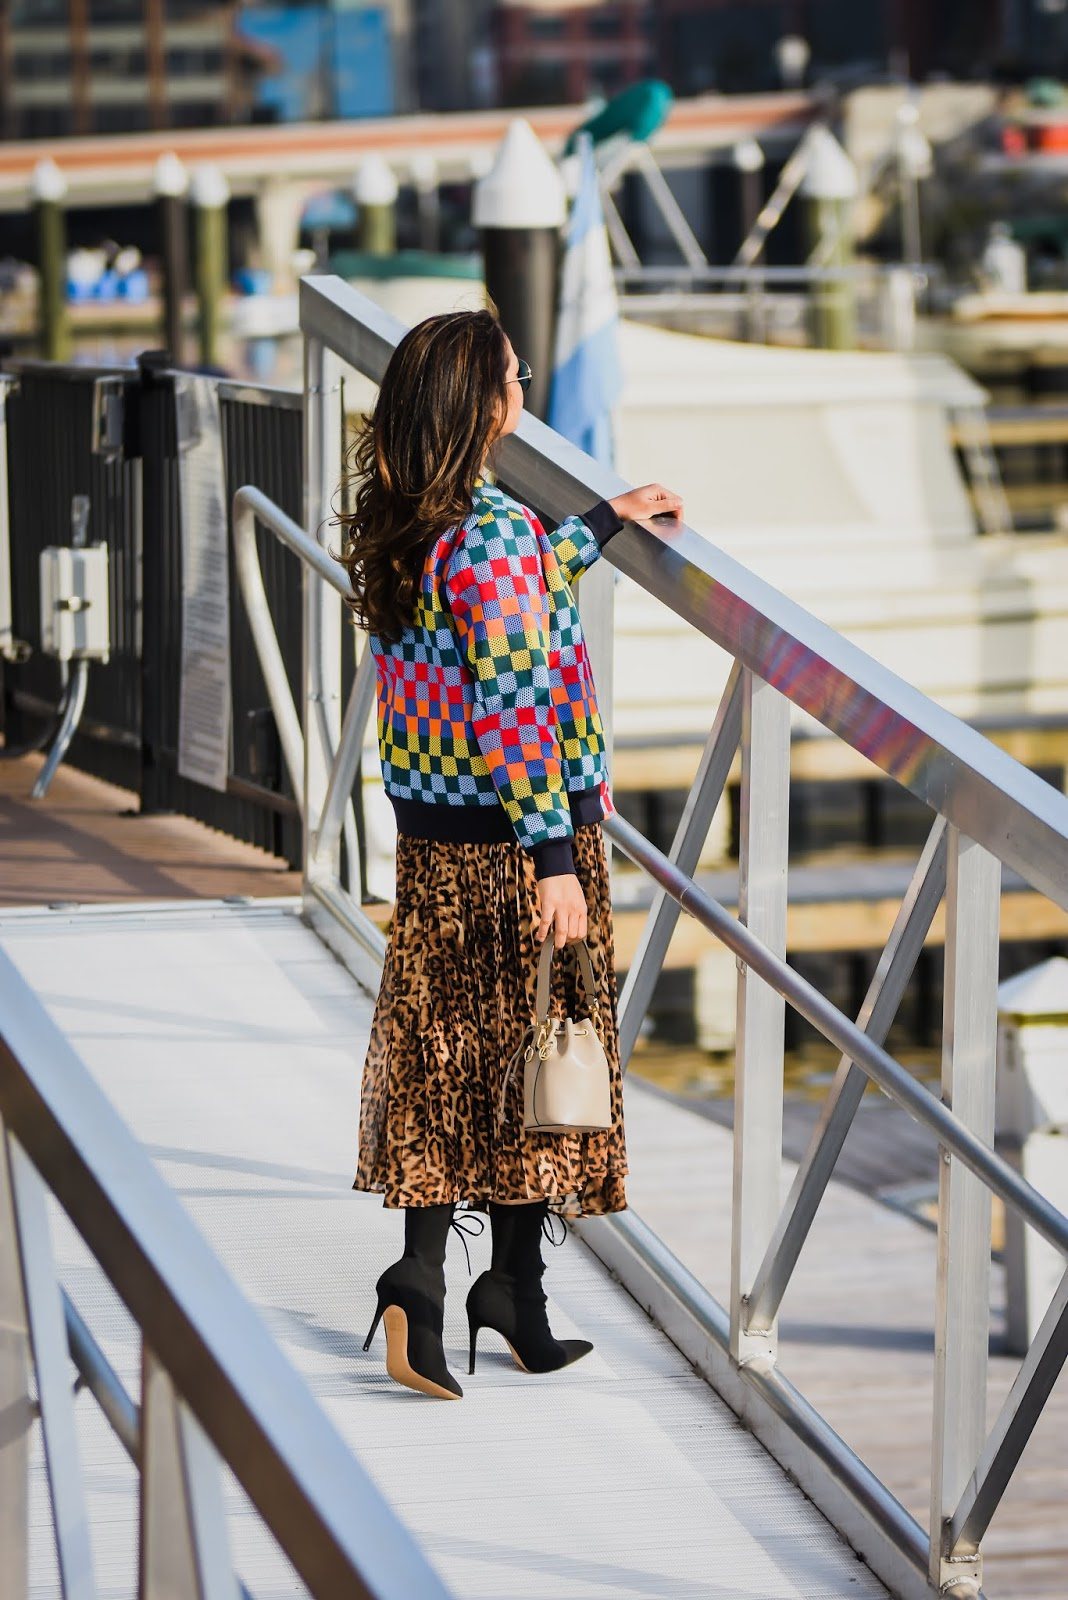 24 hours in baltimore, travel blogger, fashion, lifestyle, MAryland, travel, lifestyle, leopard print dress, tory burch jacket, winter fashion, things to do in Baltimore, myriad musings